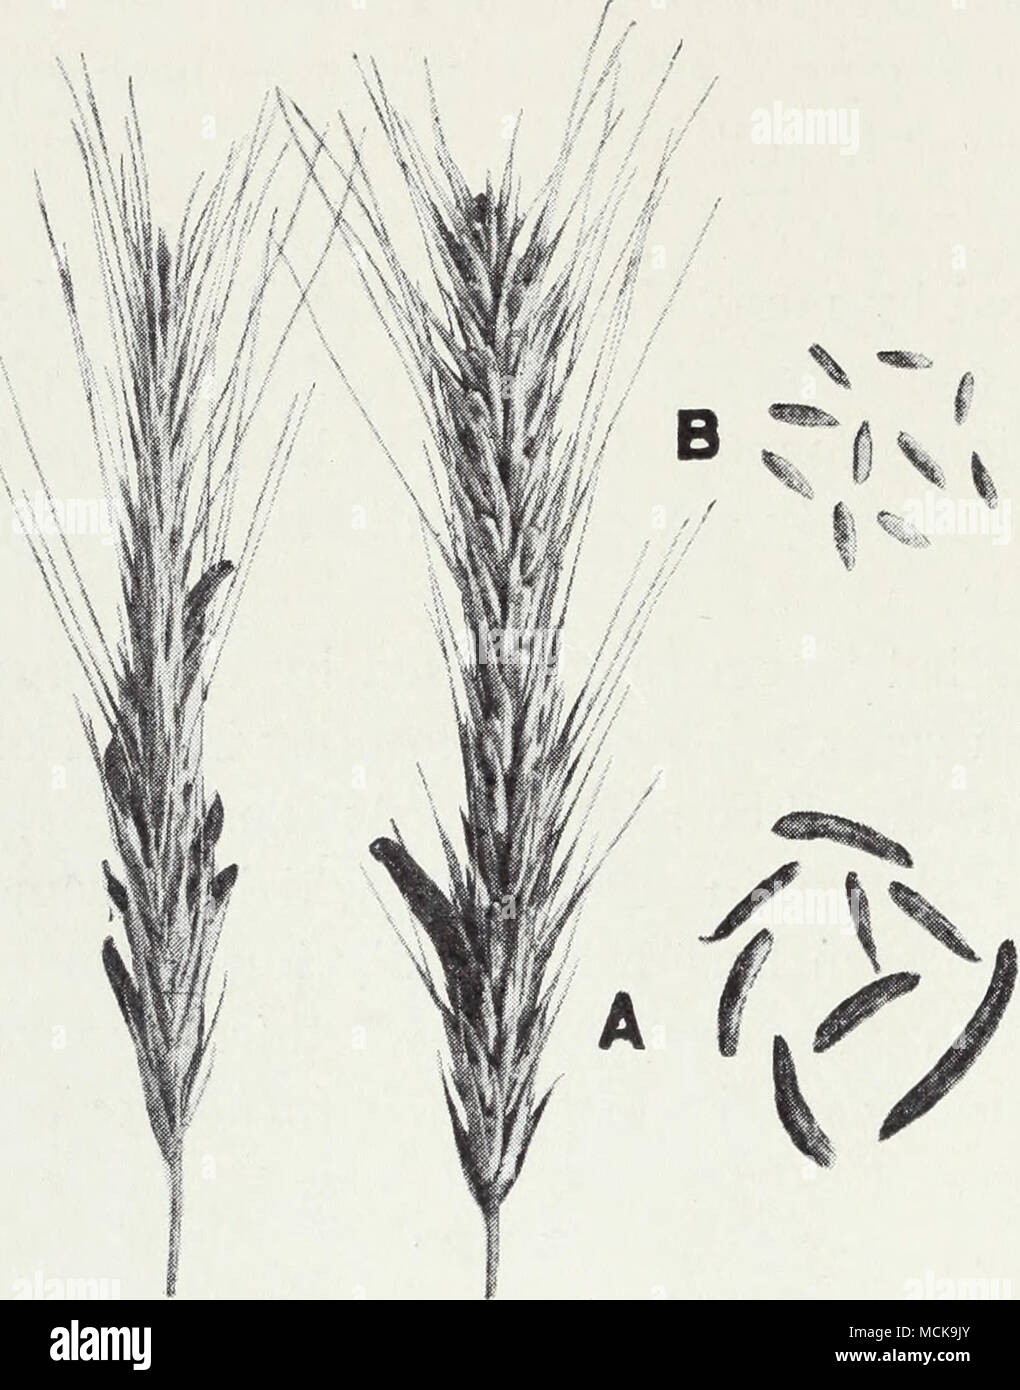 . Fig. 33.—Ergot of rye: A, the ergots, or sclerotia, three to four times the size of the rye kernel; B, kernels of rye. (Courtesy of the United States Department of Agricul- ture Cereal Disease Investigations; from Bui. 511.) or lines of smut spores on the stems and leaves. The plants are stunted. Seed treatment with copper carbonate or New Improved Ceresan and crop rotation prevent serious damage from this disease. See page 21. SORGHUM (Broom Corn, Egyptian Corn, Gyp Corn, Kafir Corn, Milo)16 Root Rot.16—Affected plants die from a rotting of the roots. The fun- 15 For further information see - Stock Image